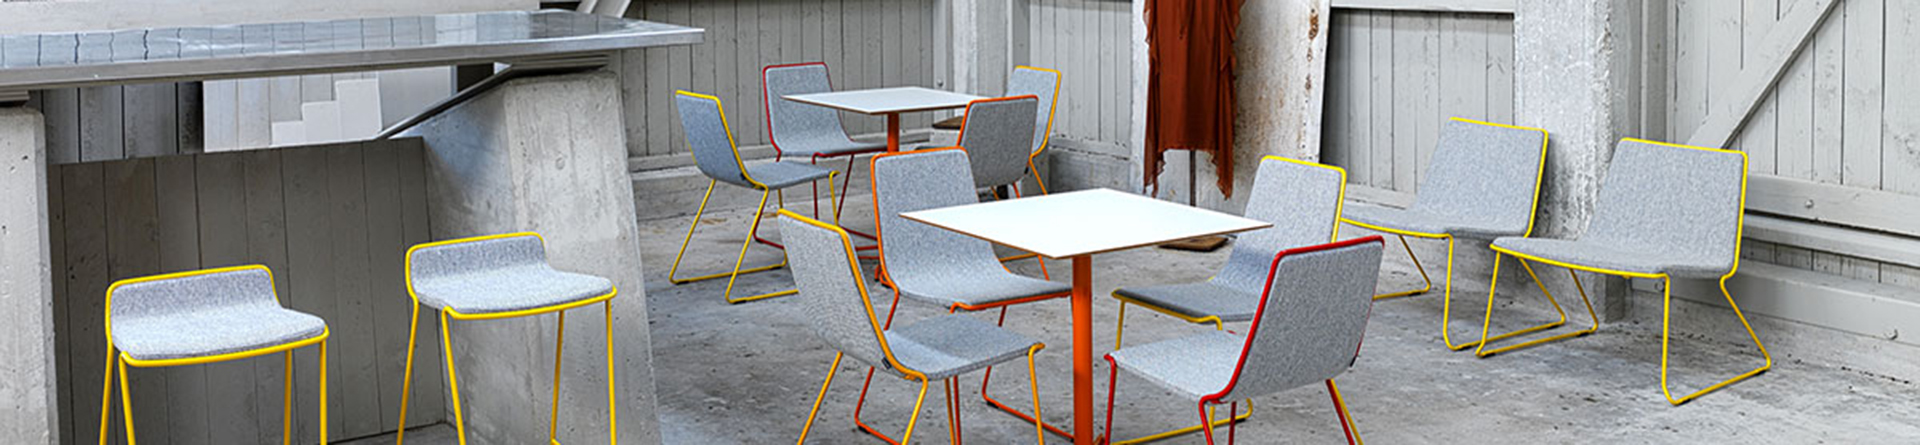 Cafe & Bistro Tables